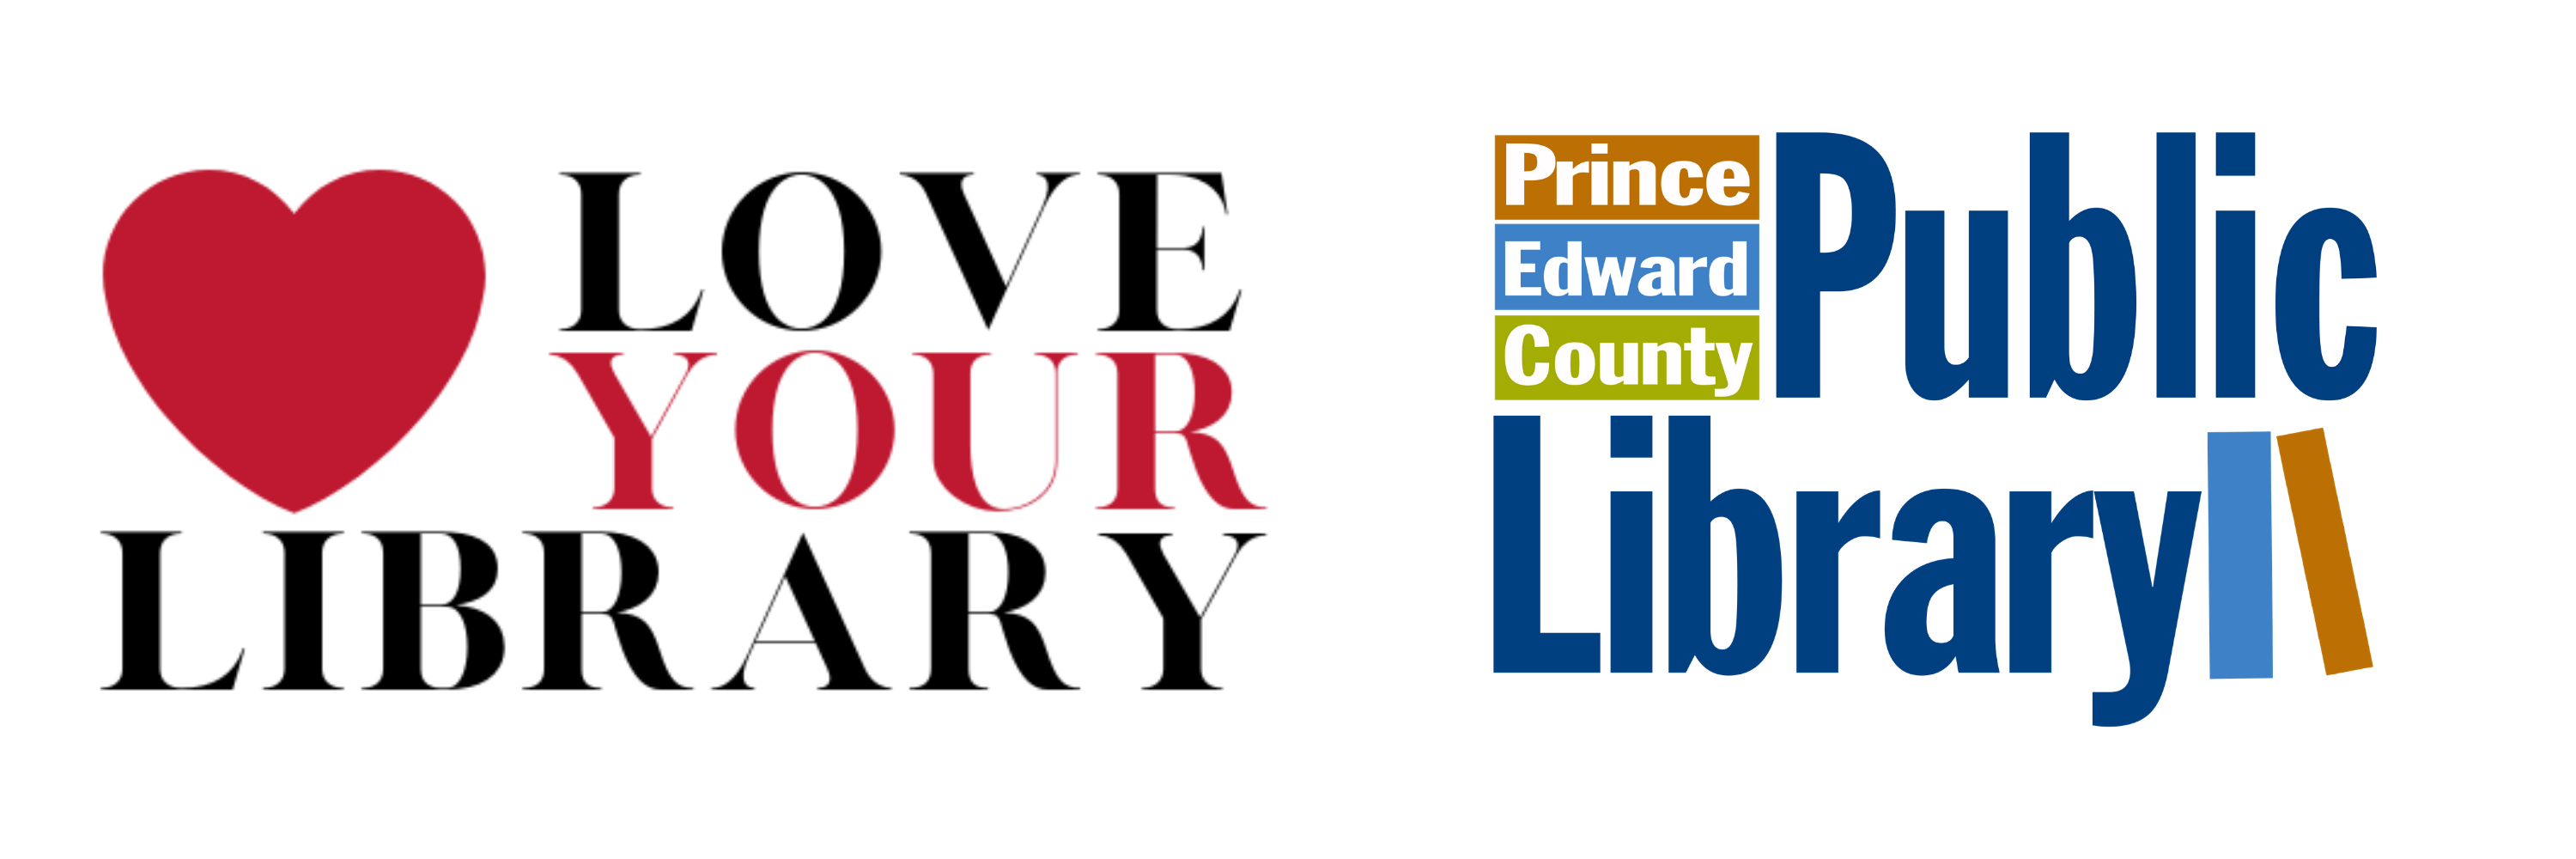 Prince Edward County Public Library